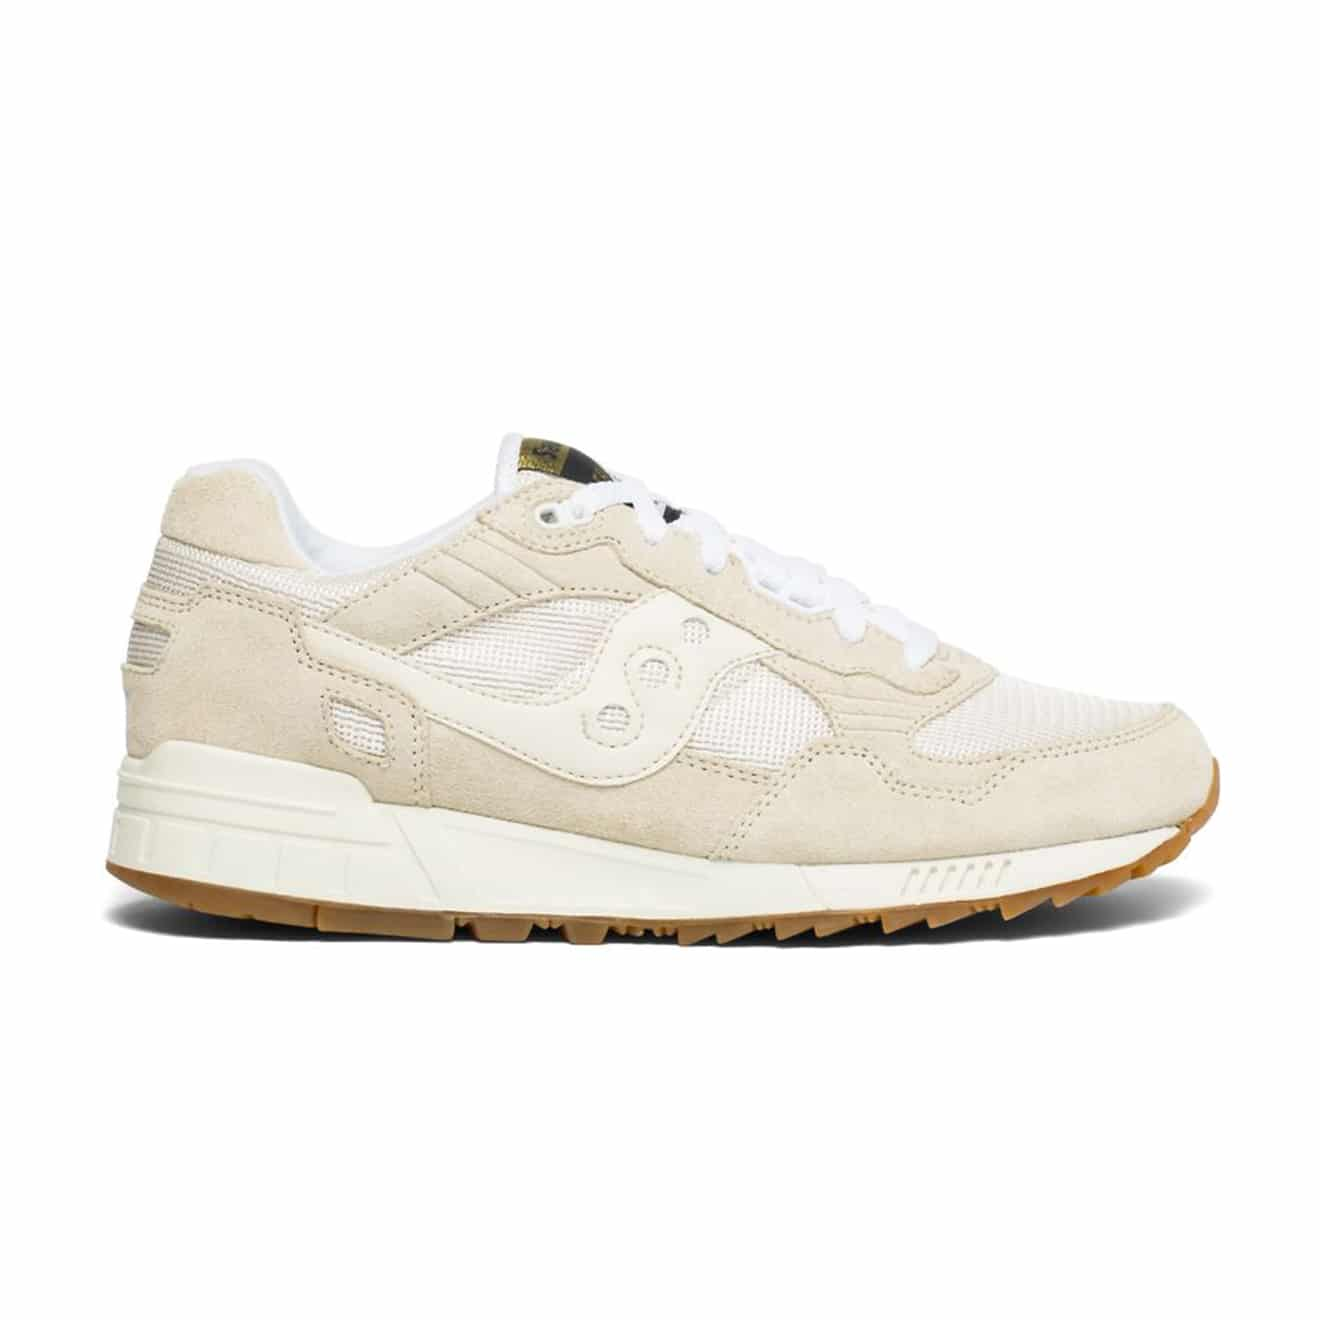 new concept d2355 be6c7 Saucony Shadow 5000 Vintage Trainers Tan / White